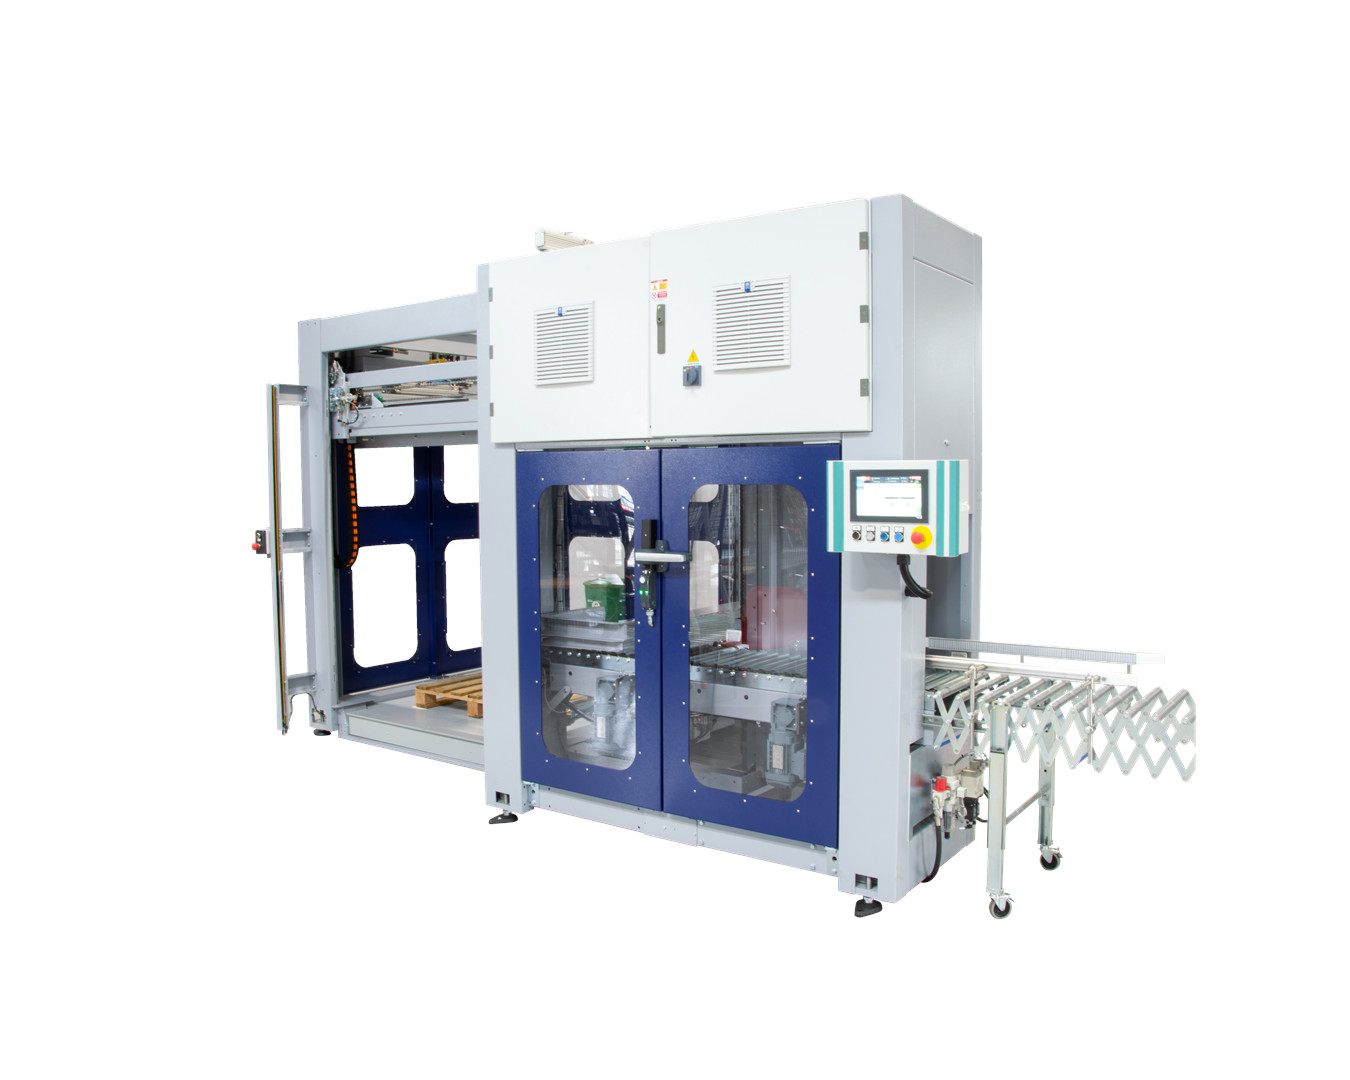 Product picture of Compact Palletiser